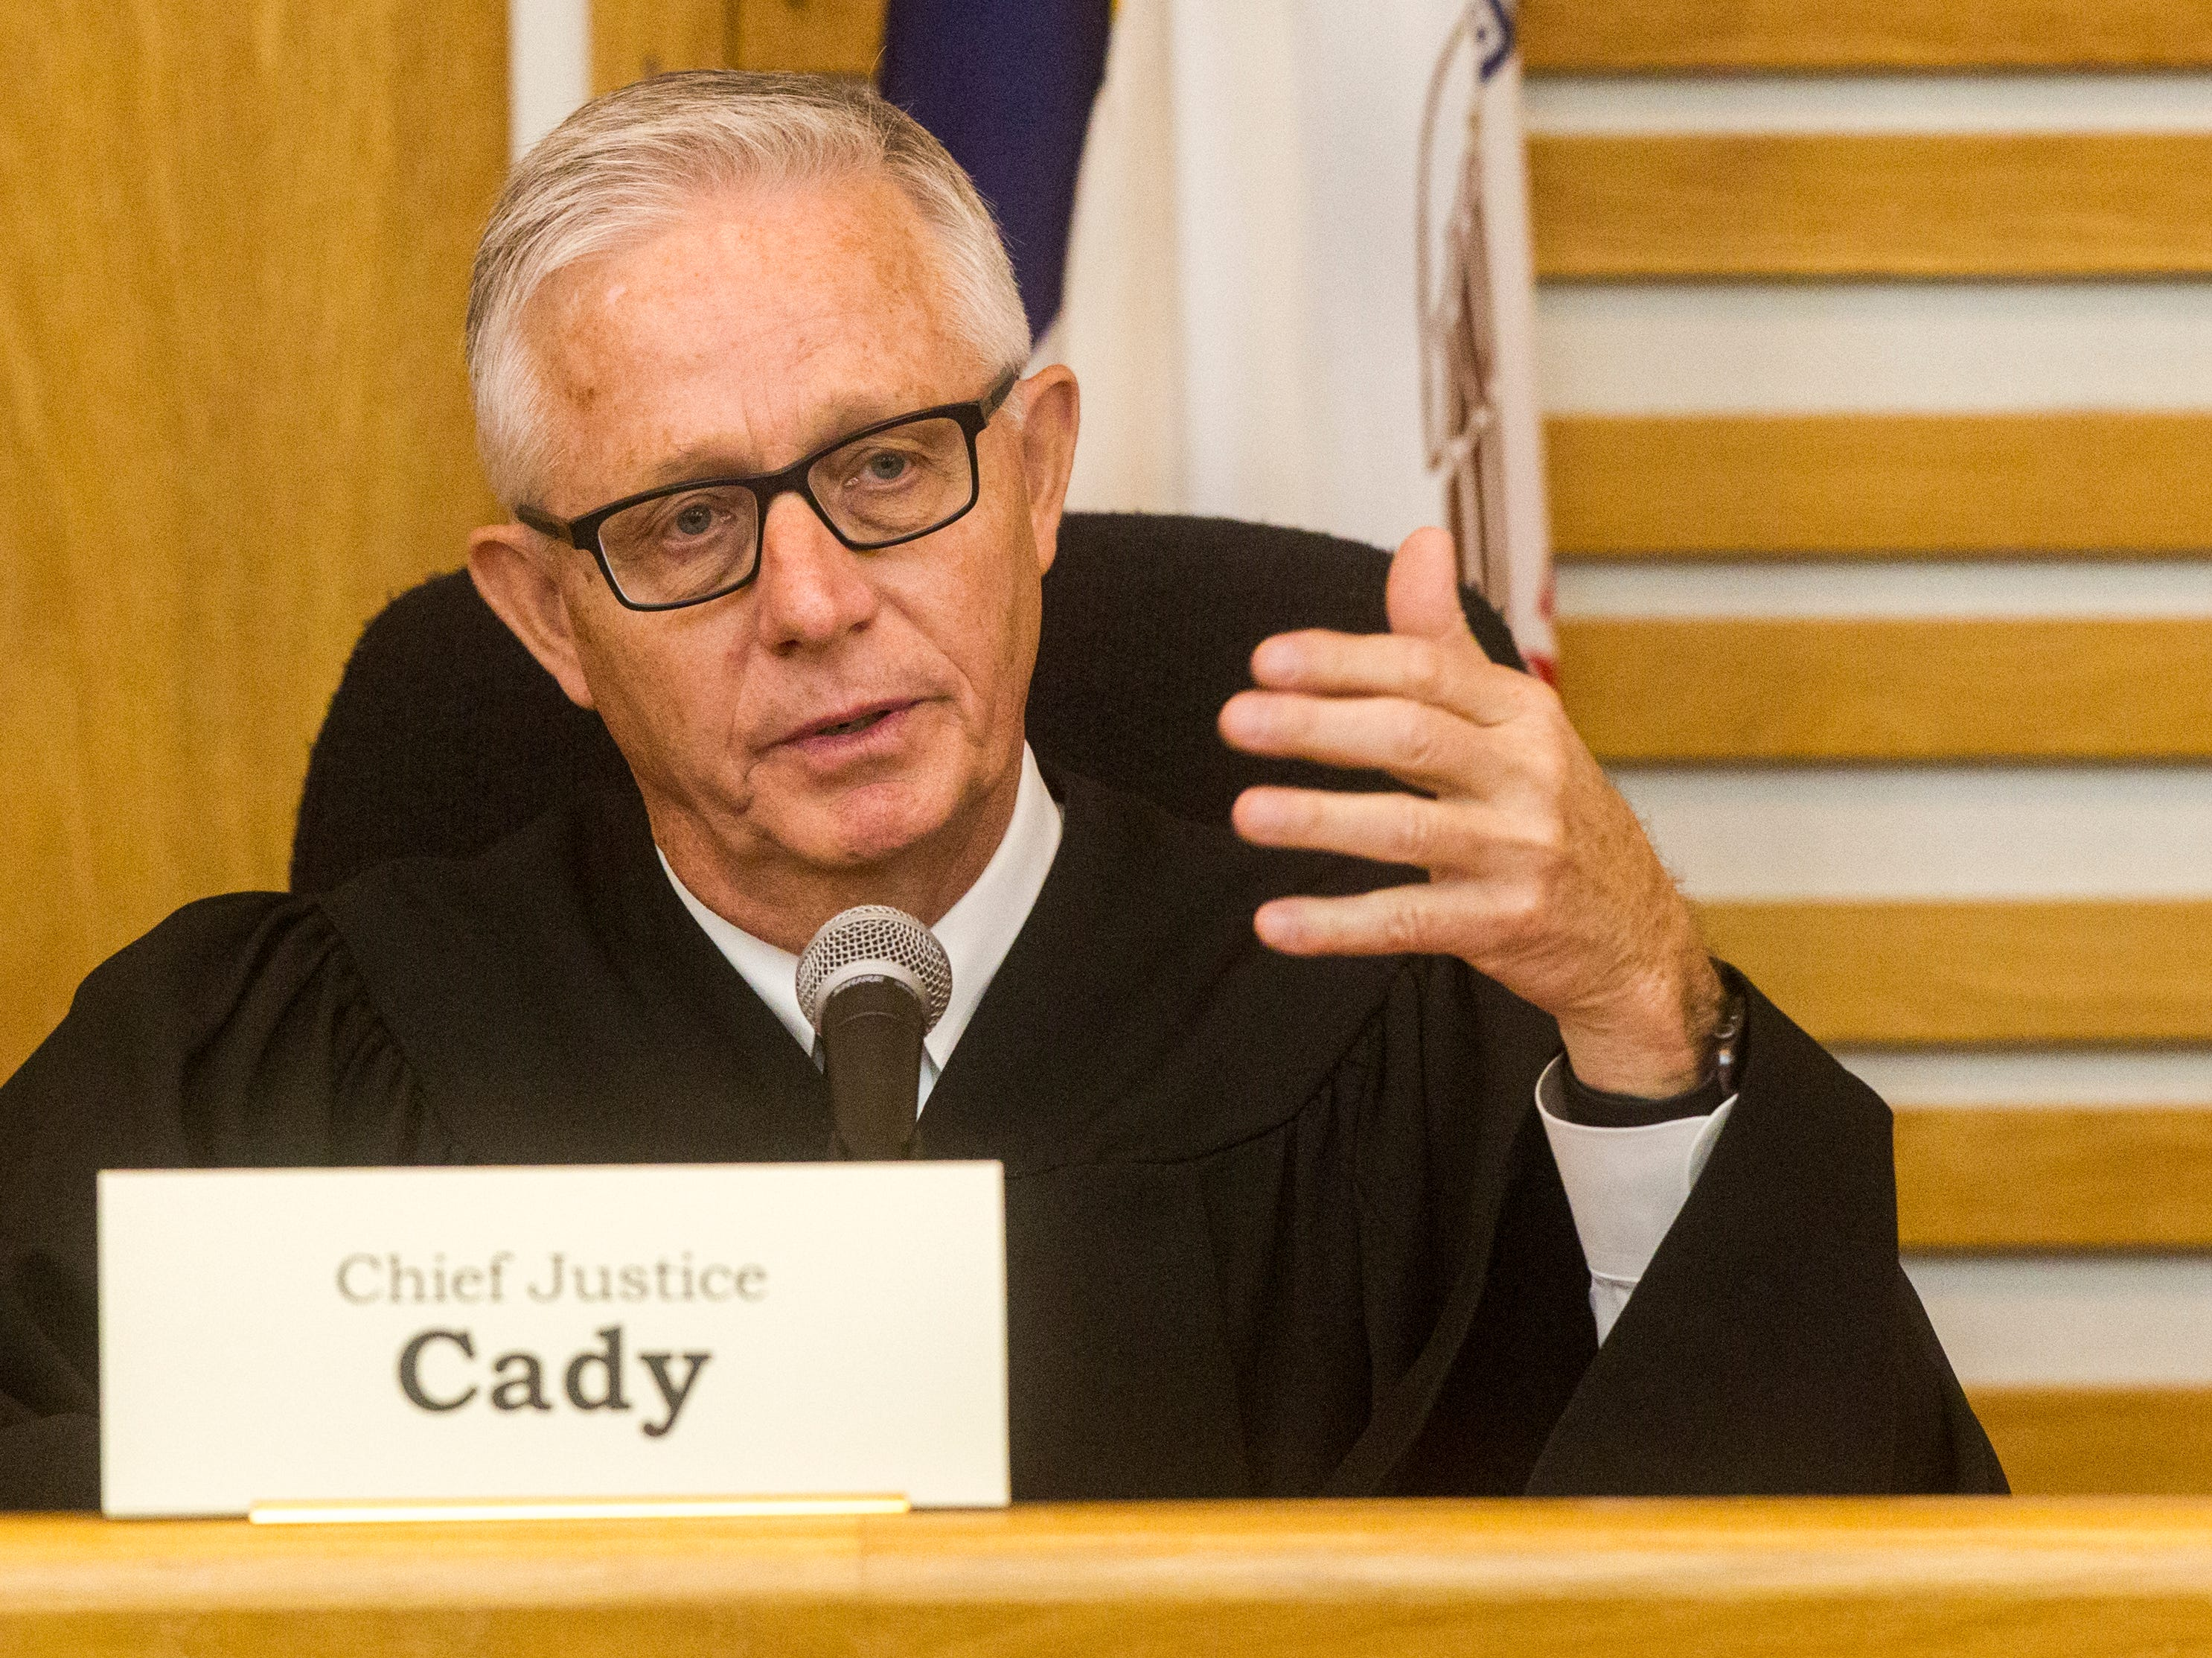 Chief Justice Mark Cady of the Iowa Supreme Court speaks while oral arguments are presented on Friday, Sept. 7, 2018, at Levitt Auditorium inside the Boyd Law Building on the University of Iowa campus in Iowa City.